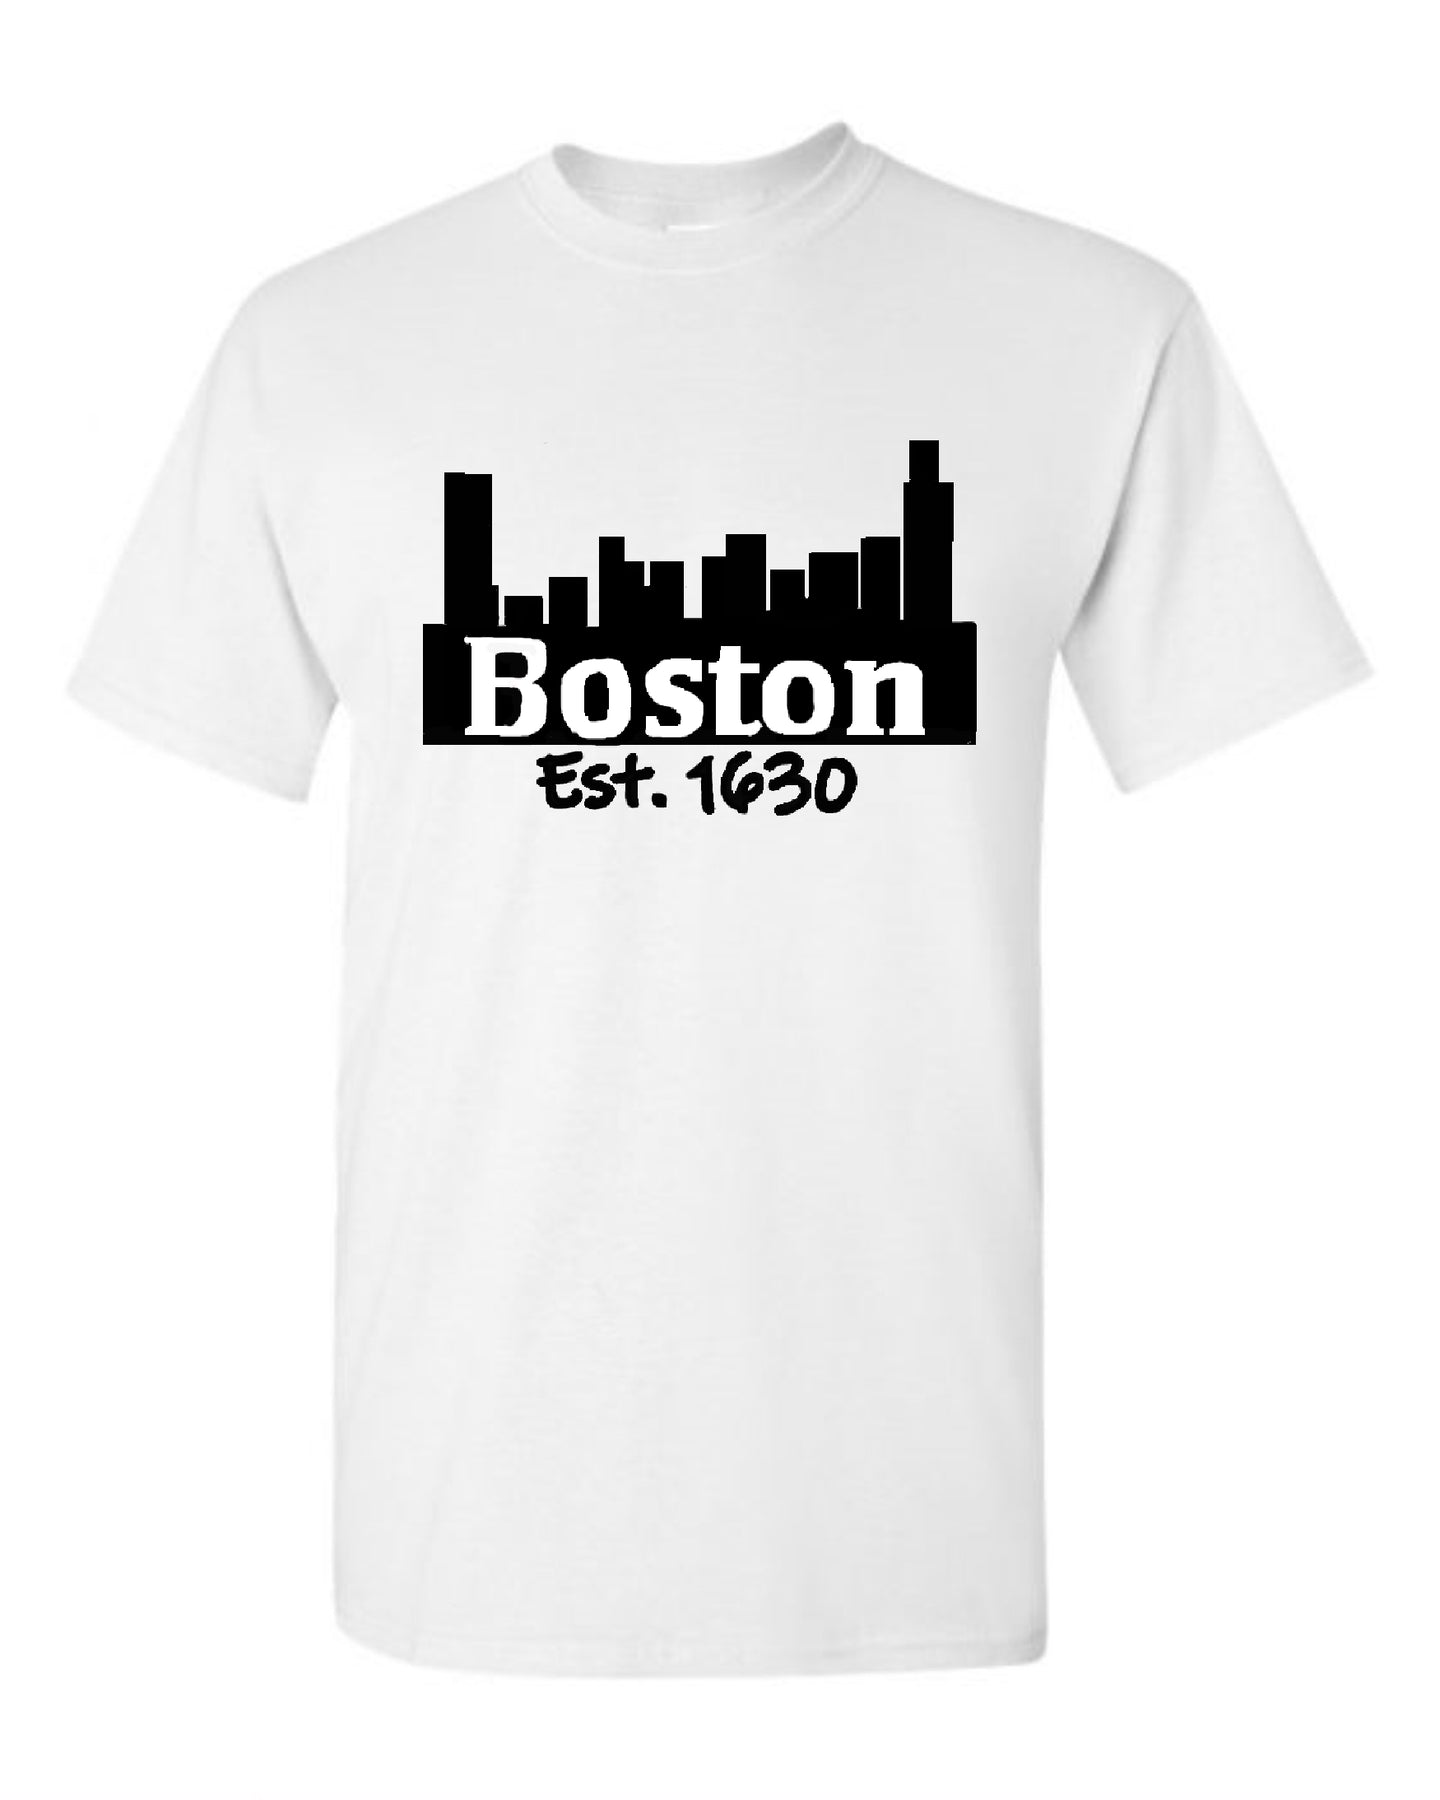 Boston Est. 1630 Tee